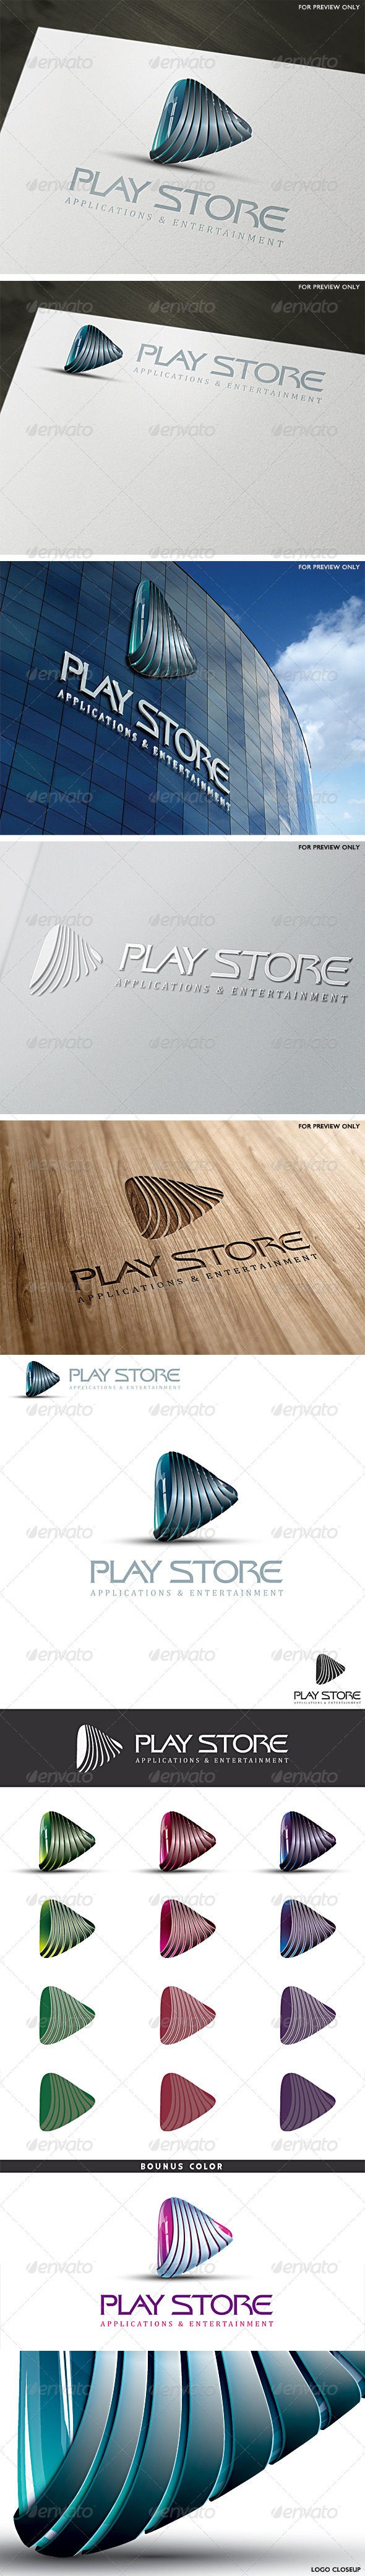 3D Play Store Logo Template - 3d Abstract